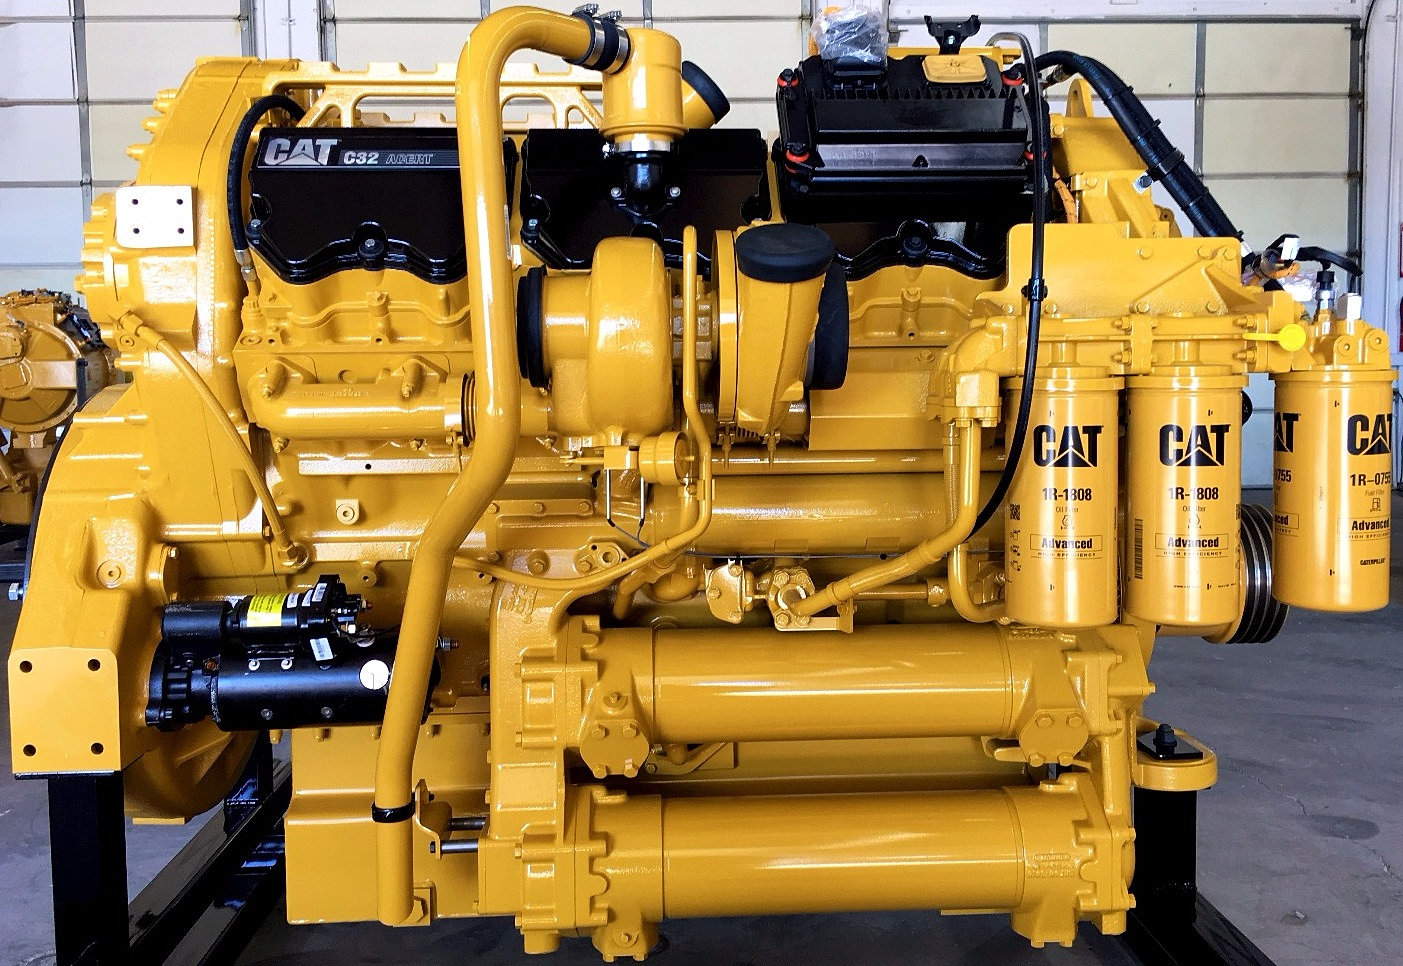 Engines For Sale >> CAT Engines | Caterpillar Engines For Sale Worldwide | Diesel Engines | CAT C32 / CAT 777F